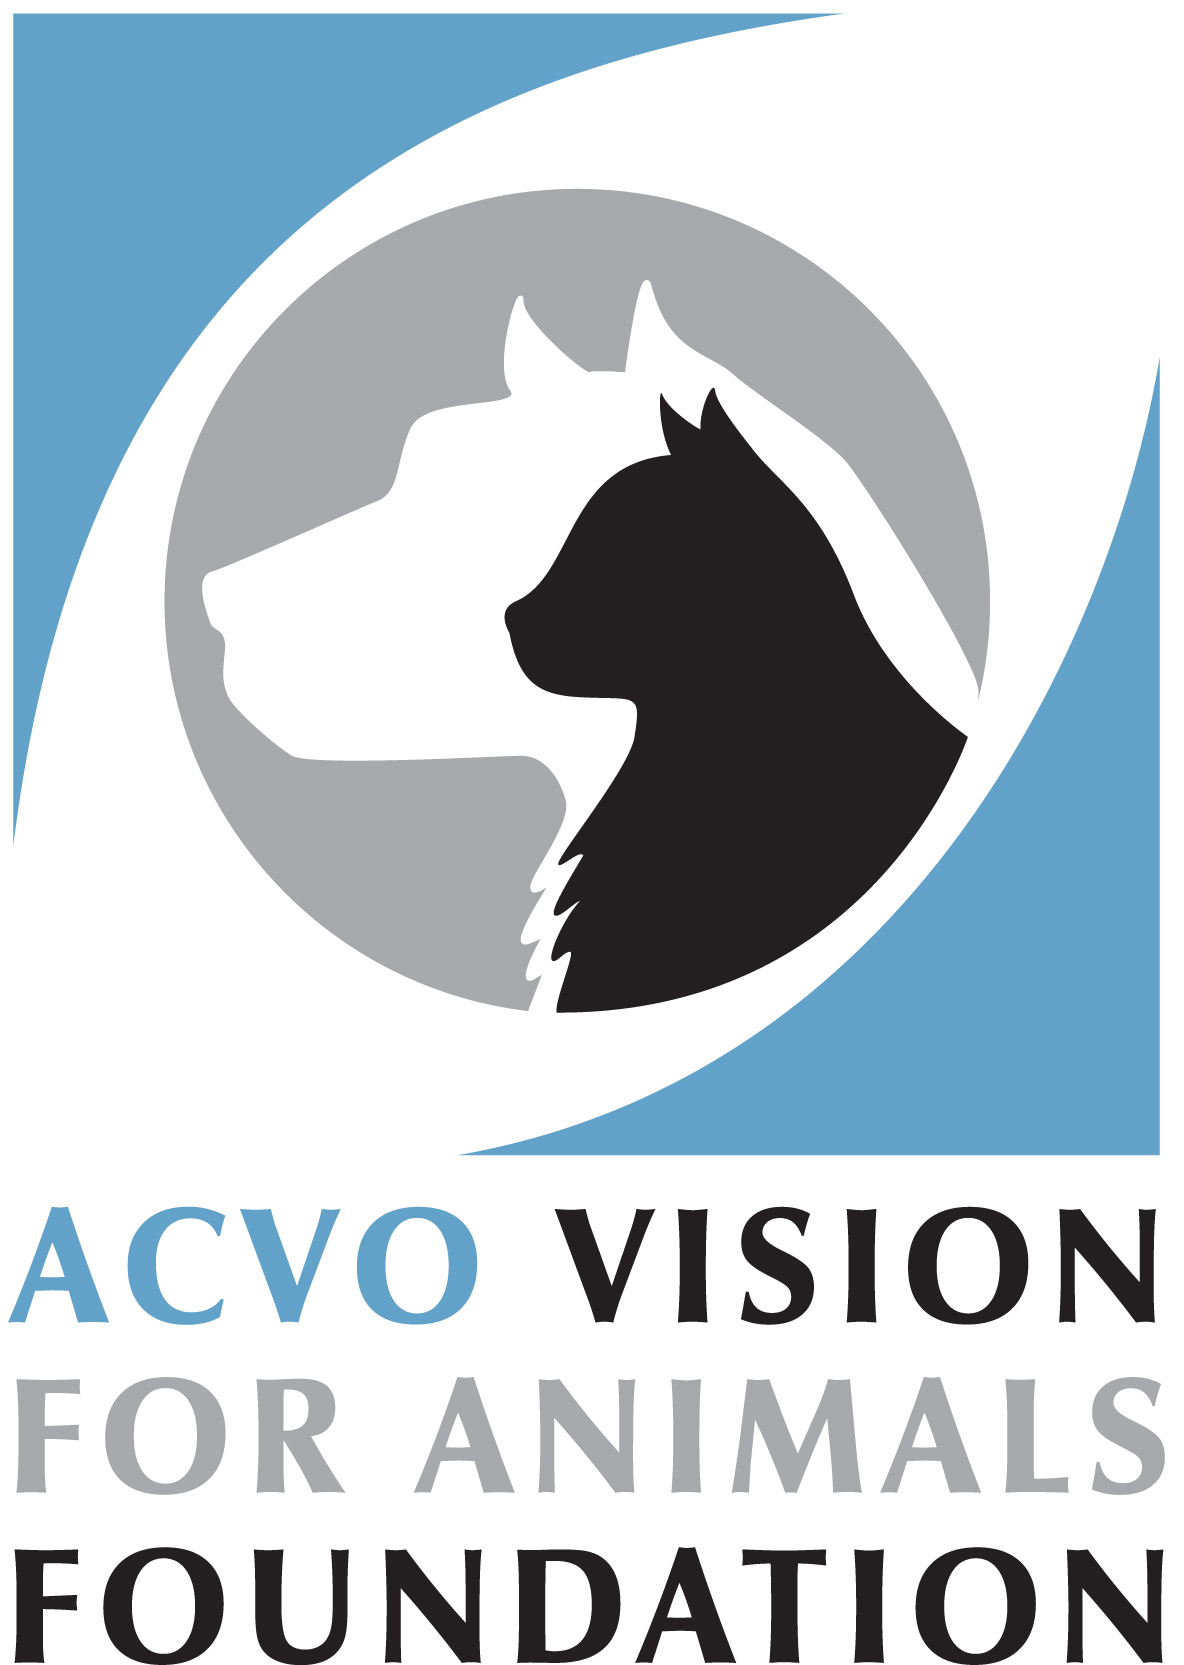 ACVO Vision for Animals Foundation - The Vision for Animals Foundation (VAF) was established in 2002 by the ACVO. The mission of the ACVO VAF is to improve the quality of life of animals by preserving and restoring vision through education and science.